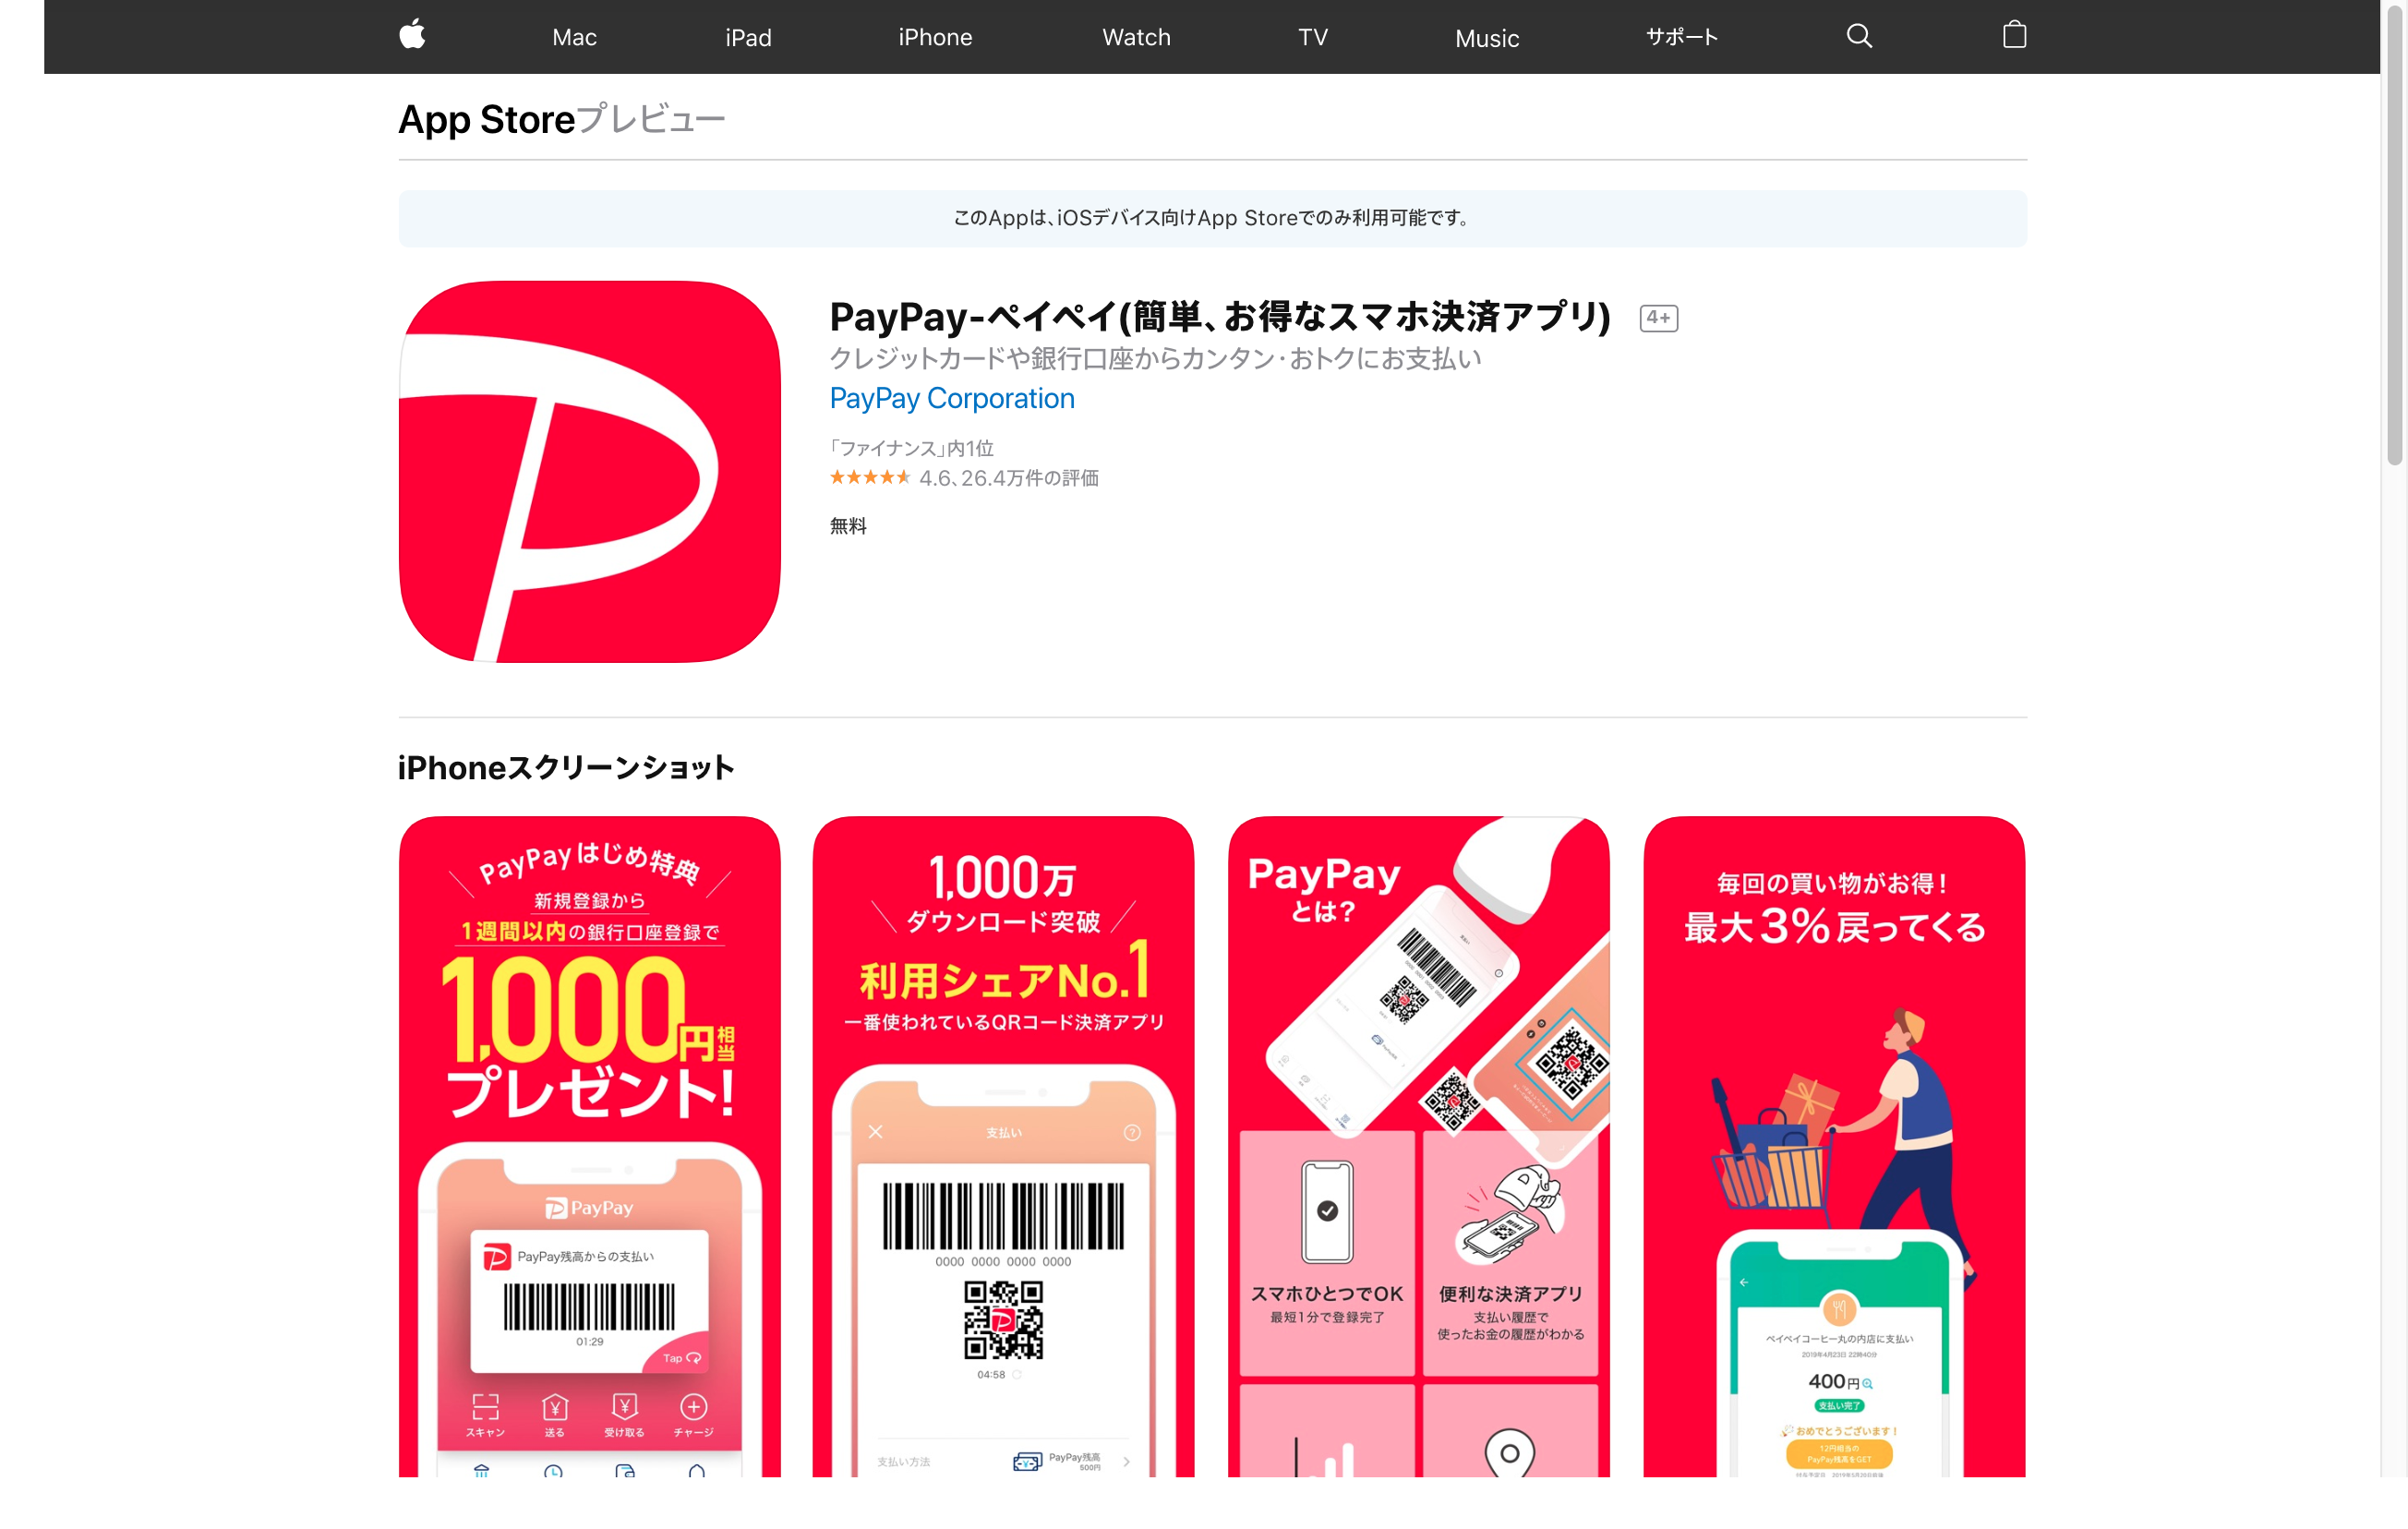 App Store「PayPay」アプリ